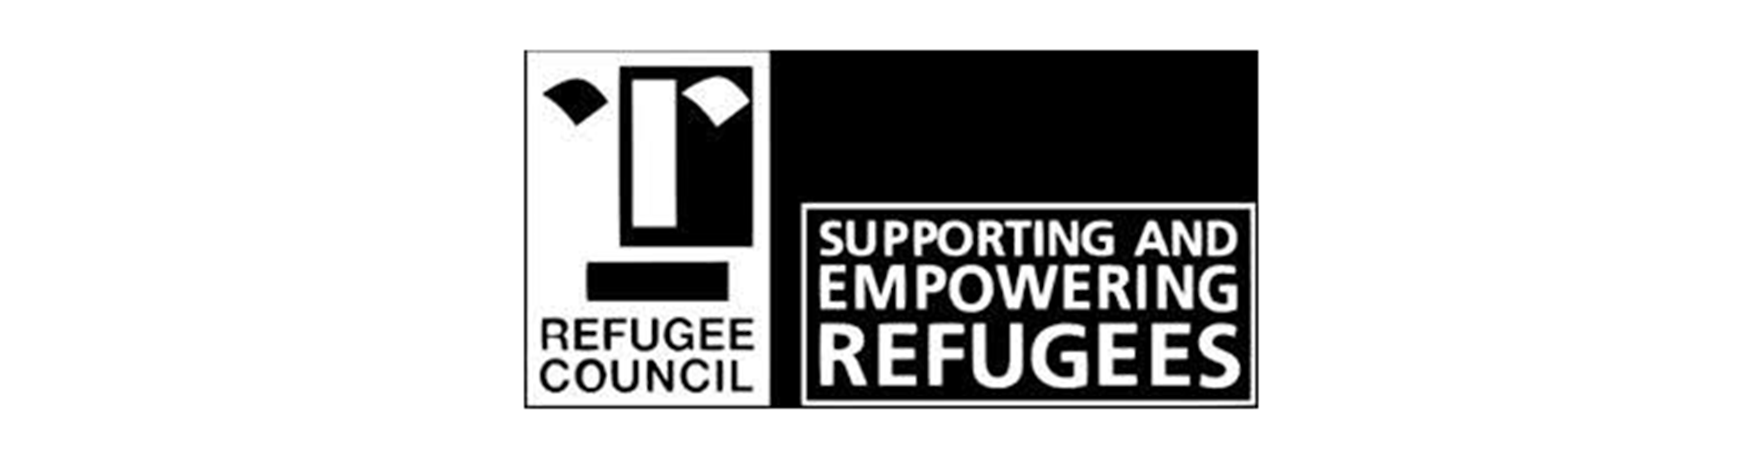 Claiming Universal Credit and other benefits if you are a refugee